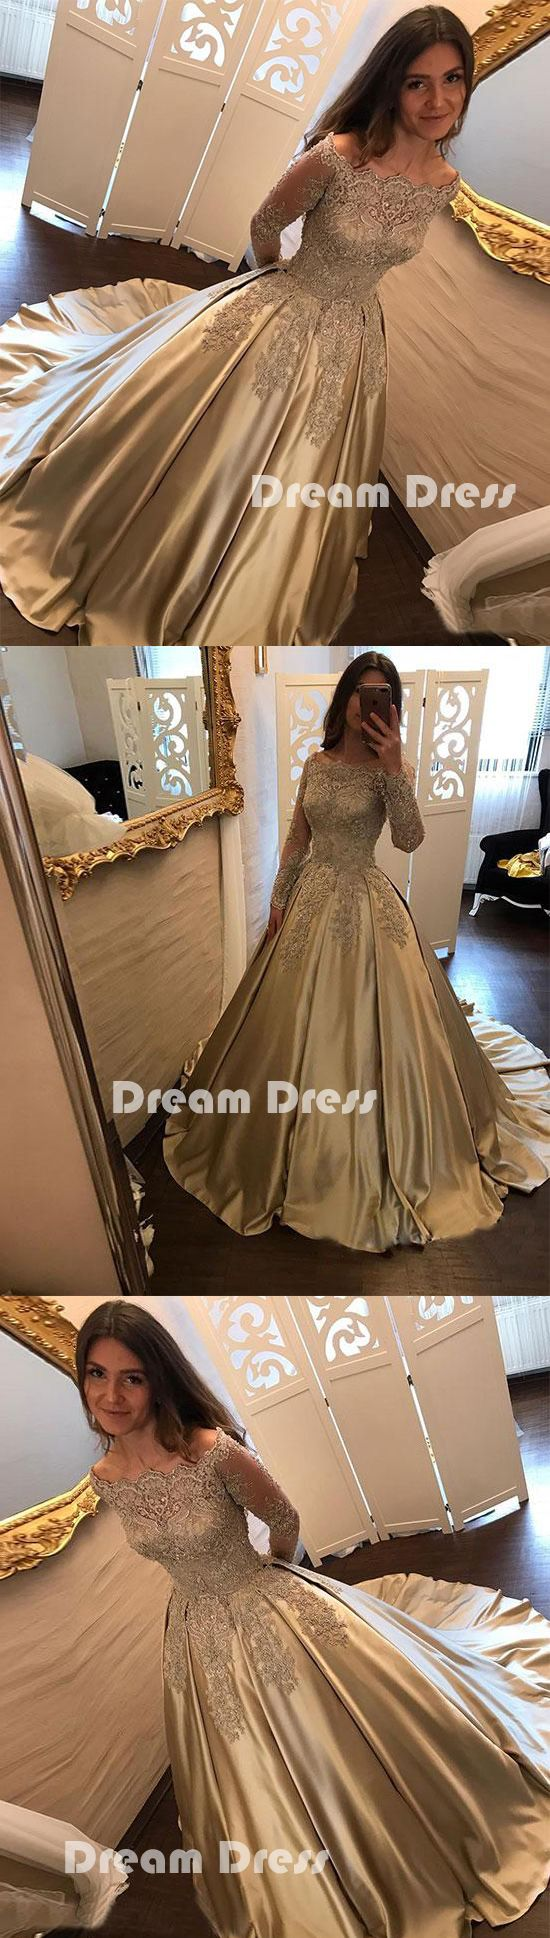 Gold satin lace long prom dress long sleeve evening dressespd